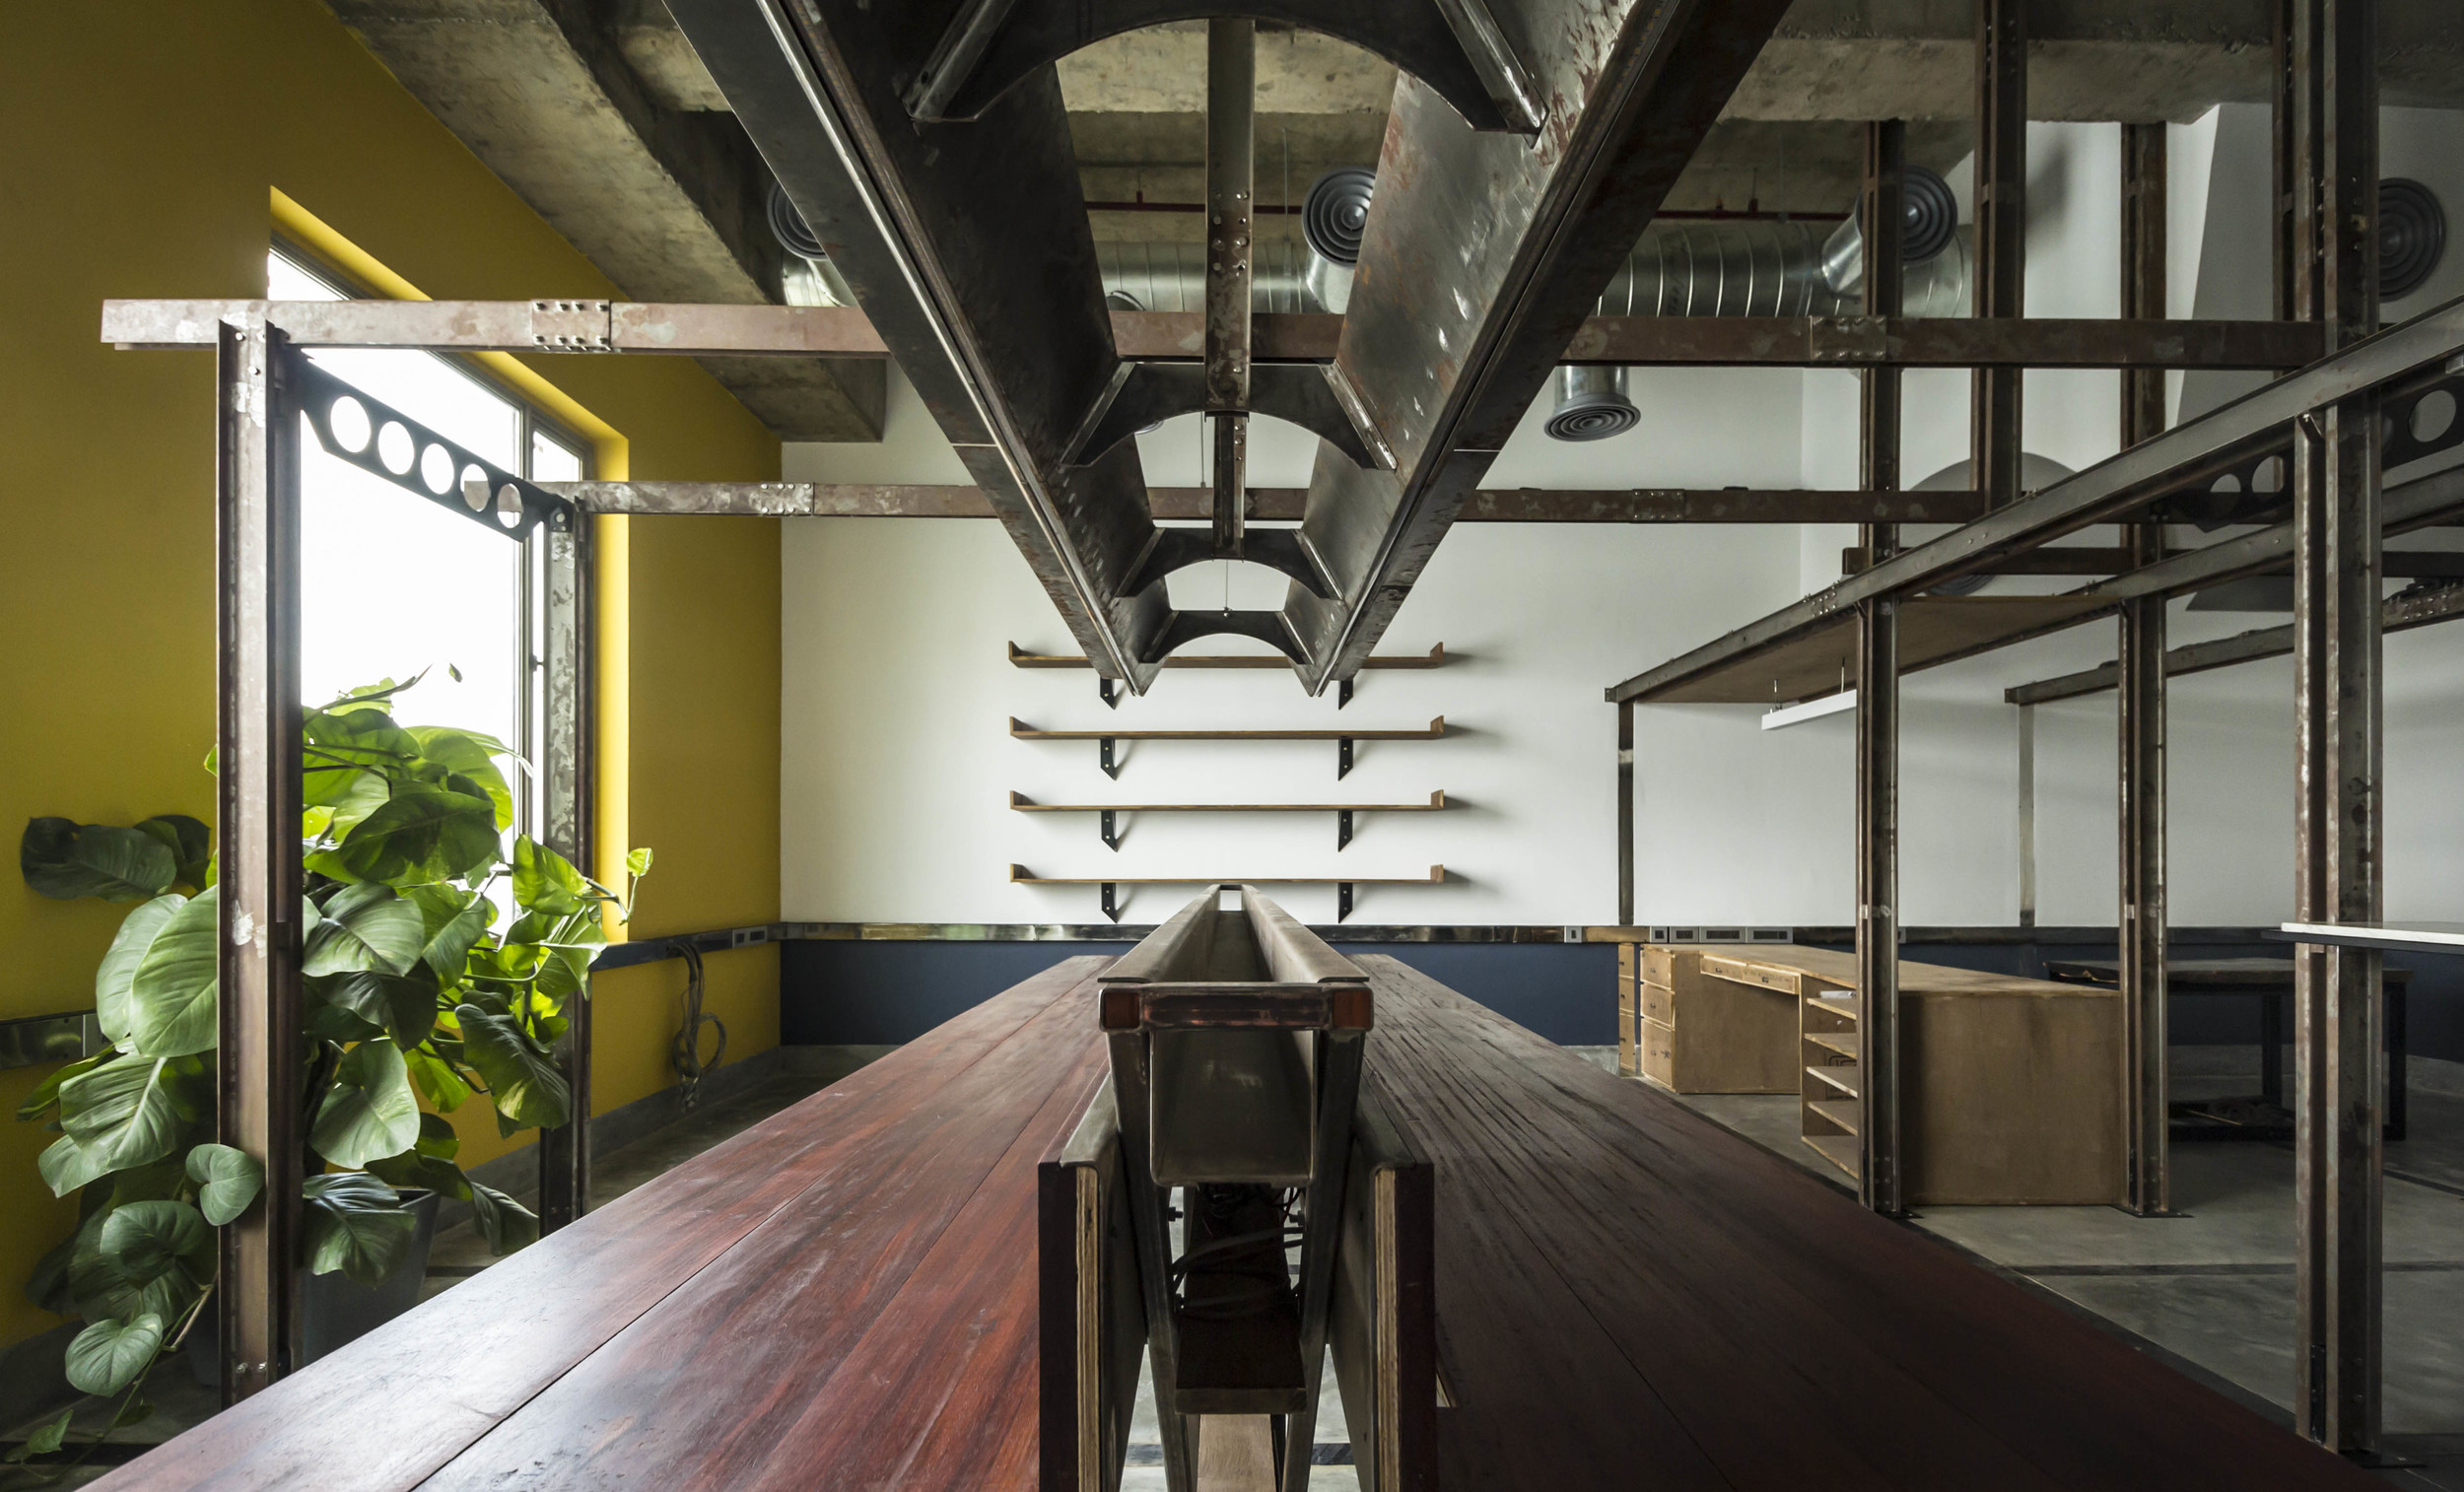 Studio space for and by Harsh Vardhan Jain Architects. Photography by Nakul Jain